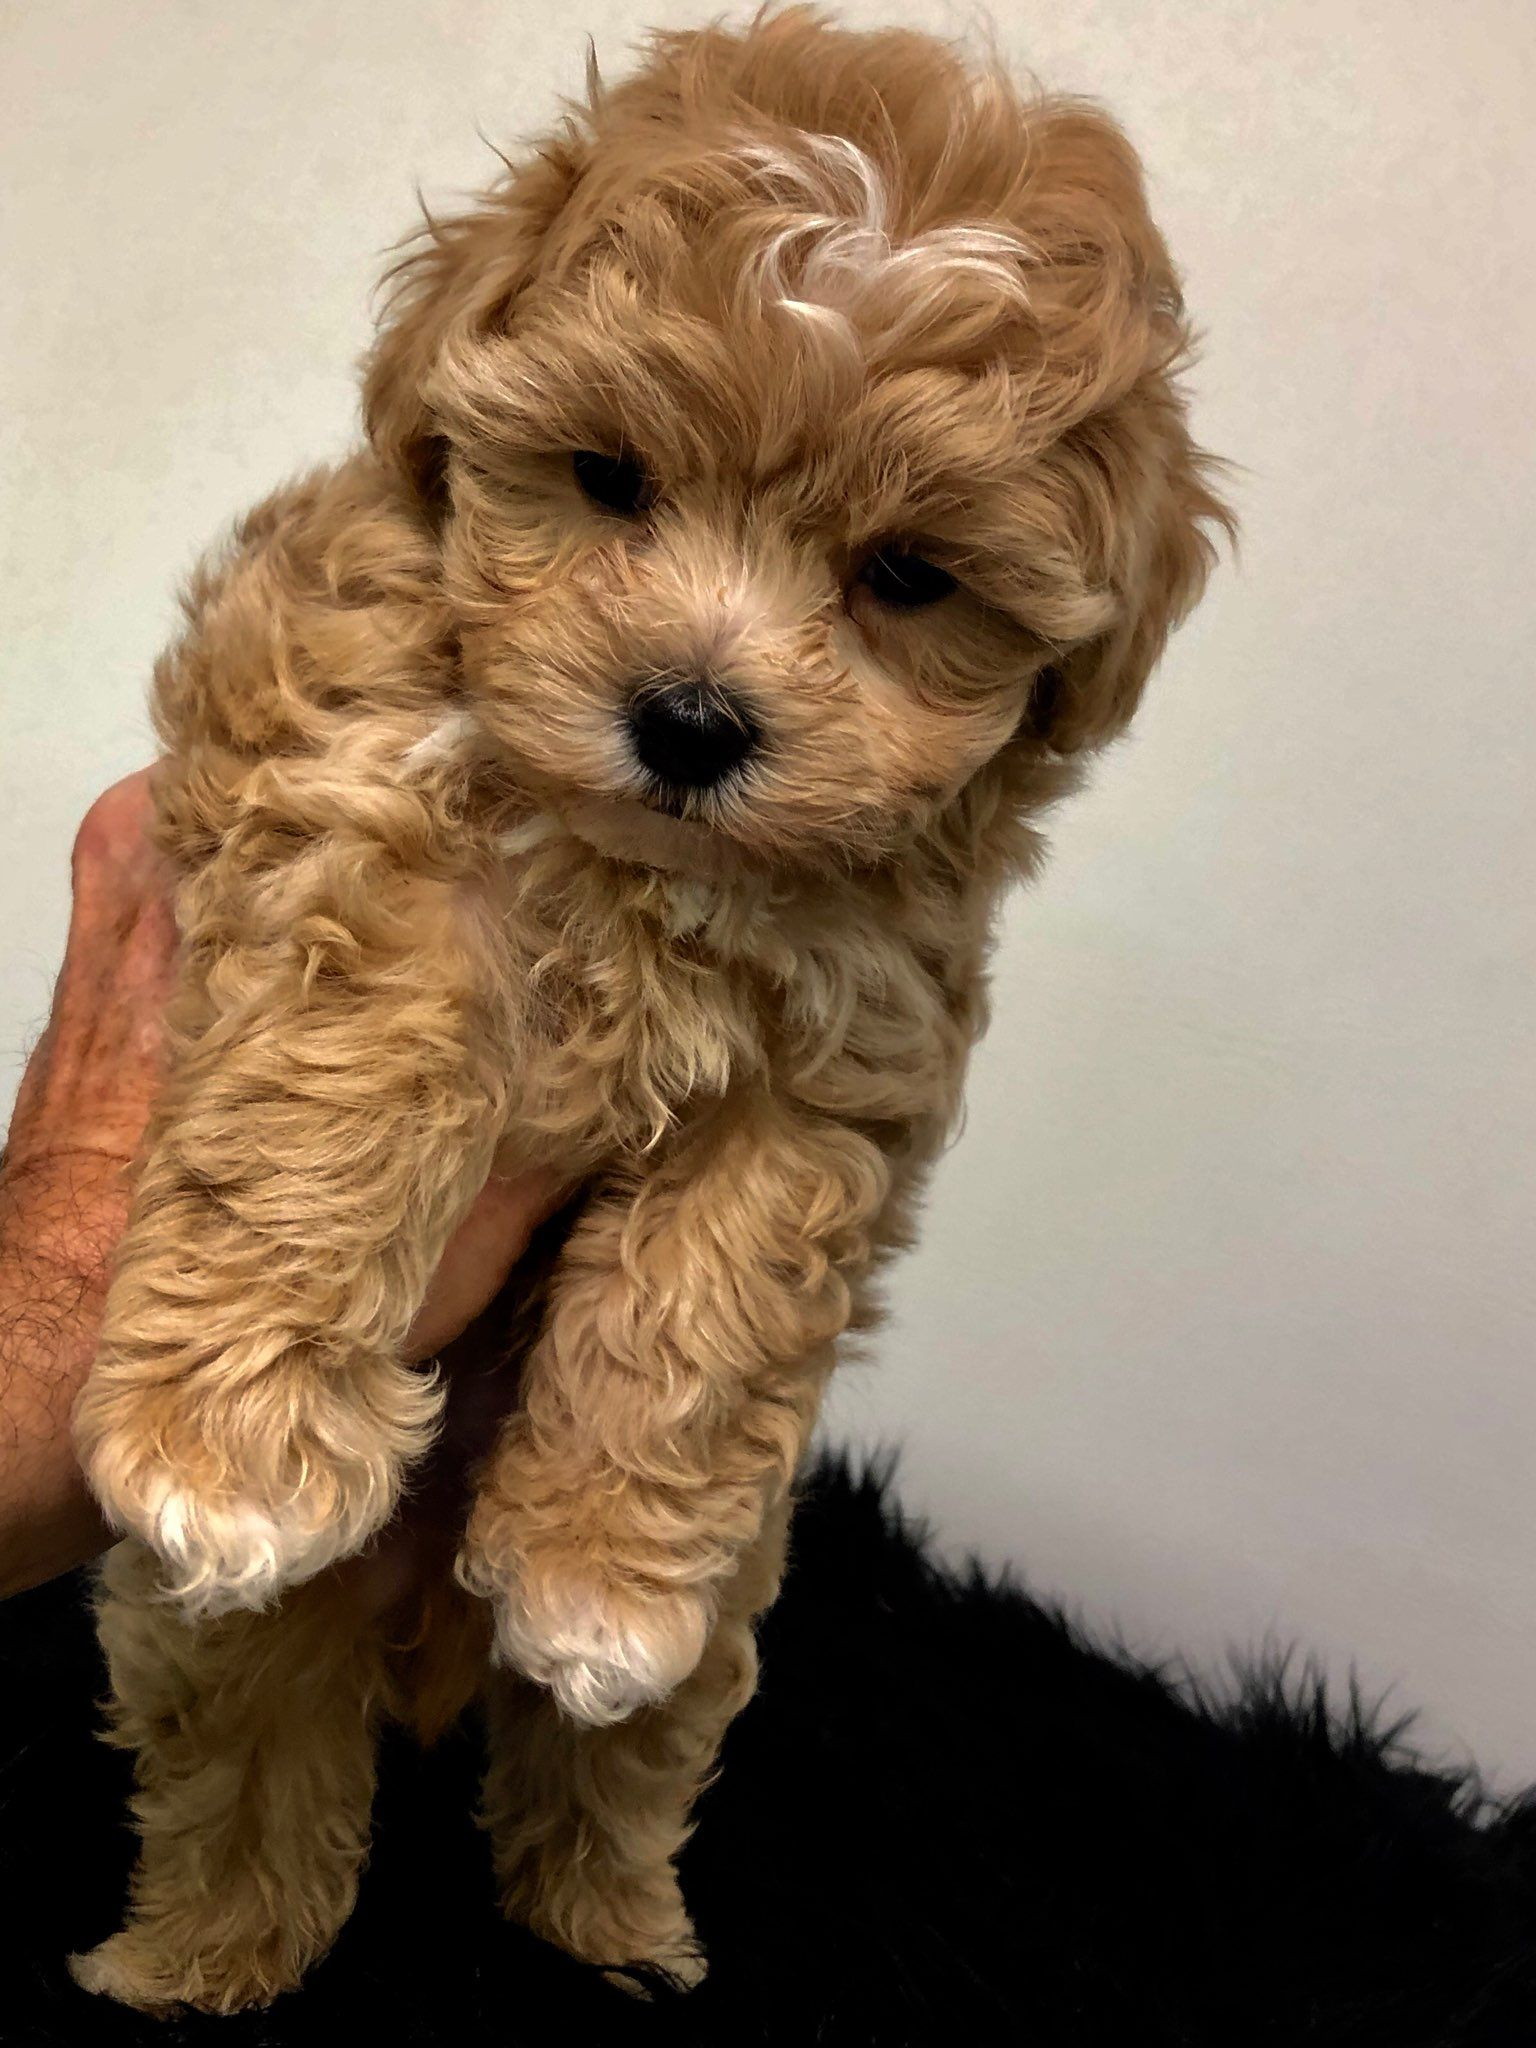 Available Hollywood Puppy Palace In 2020 Teddy Bear Puppies Cute Baby Animals Teddy Bear Dog